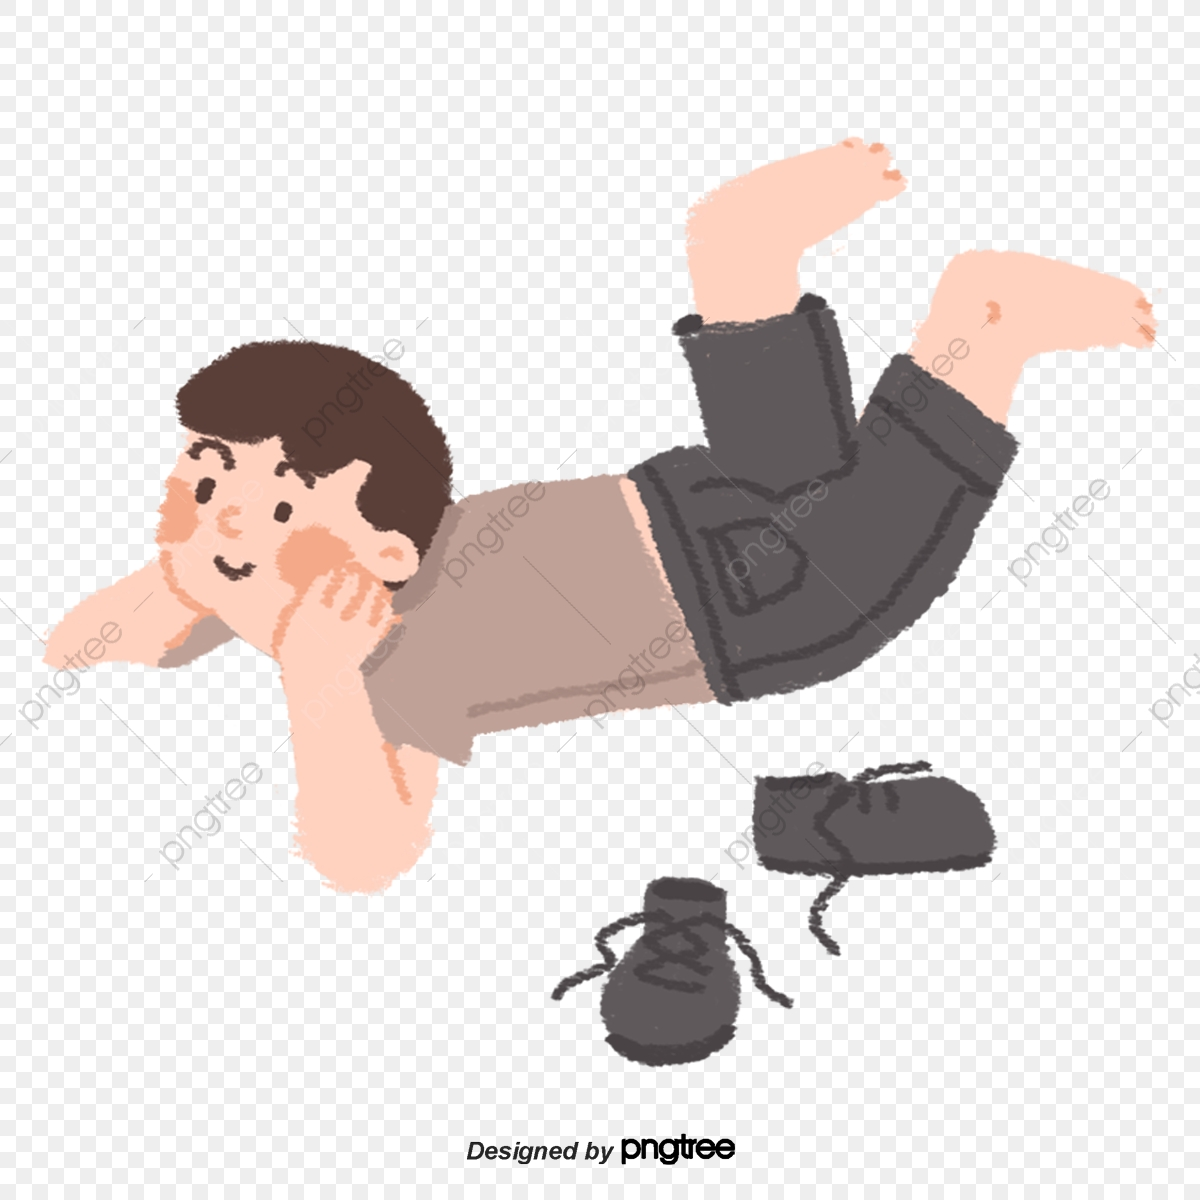 Boy Lying On His Back Png - A Cartoon Barefoot Boy Lying On The Ground With His Cheek On His ...